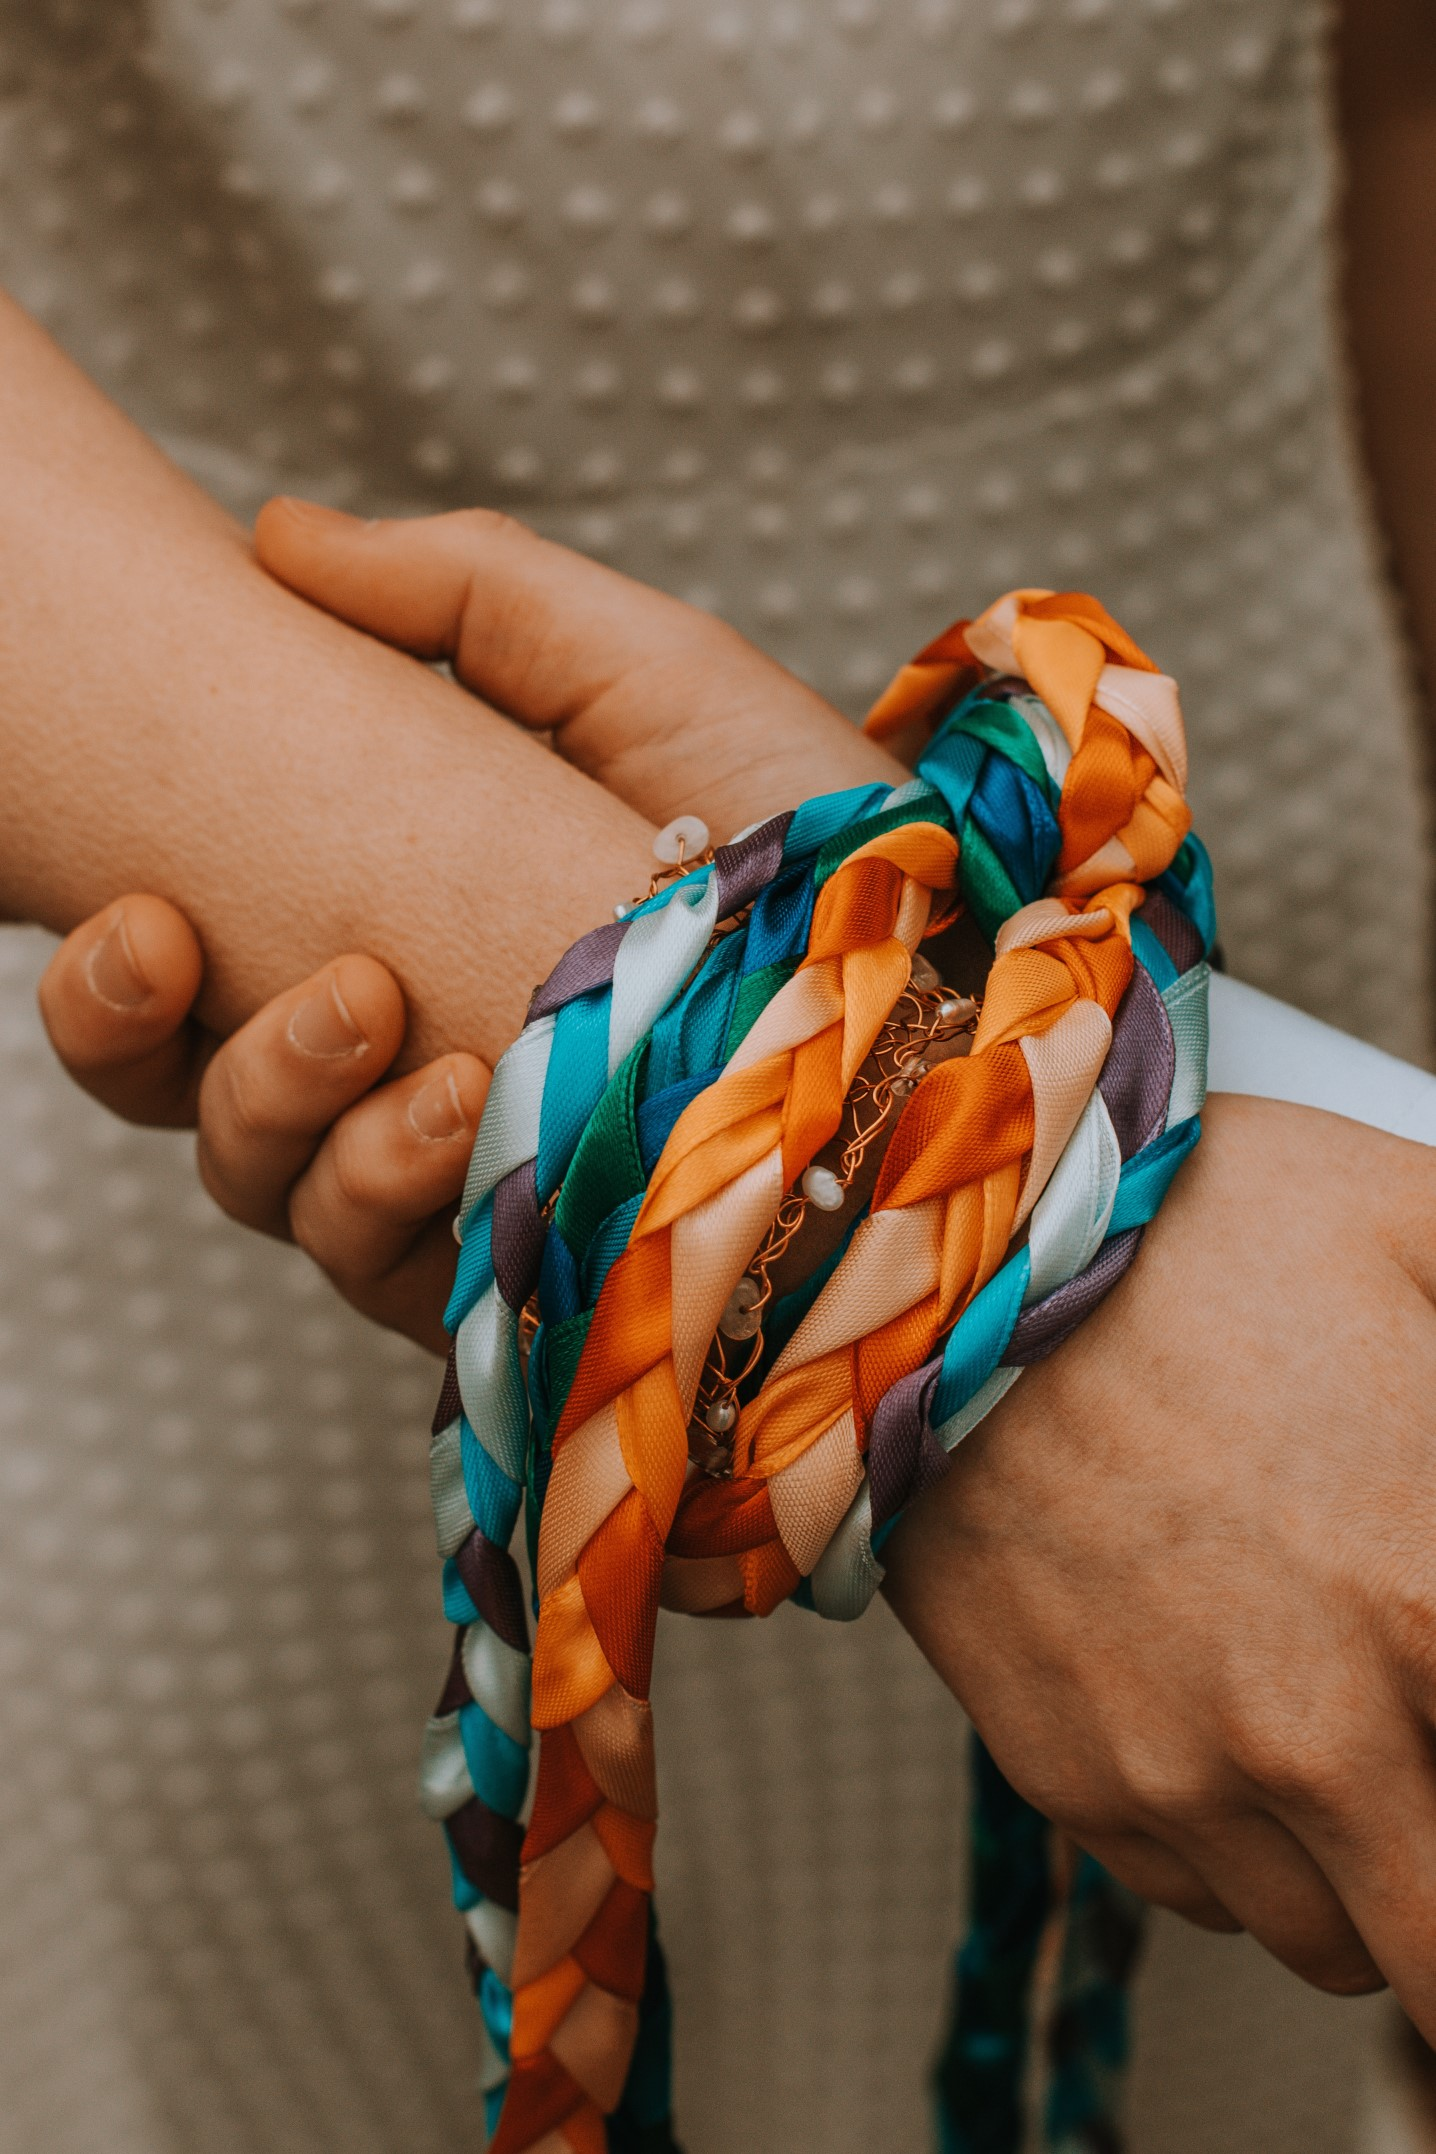 Alternative Forest Wedding - Sammy Leas Retro Emporium -Photography By Wills- alternative wedding - unconventional wedding- edgy woodland wedding- handfasting cord